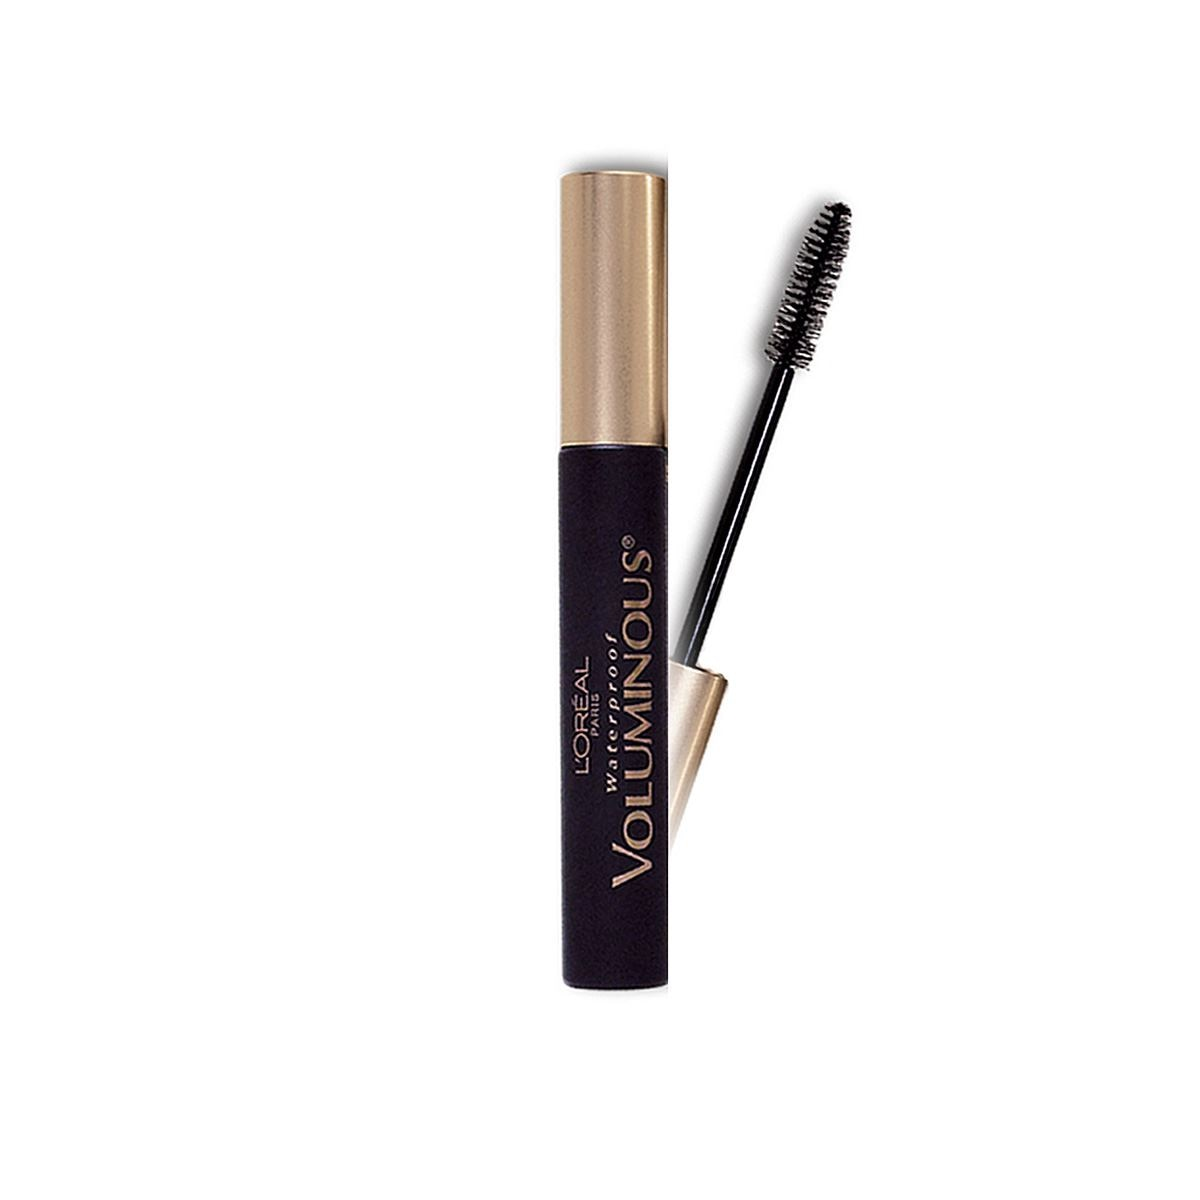 Voluminous mascara blister WP